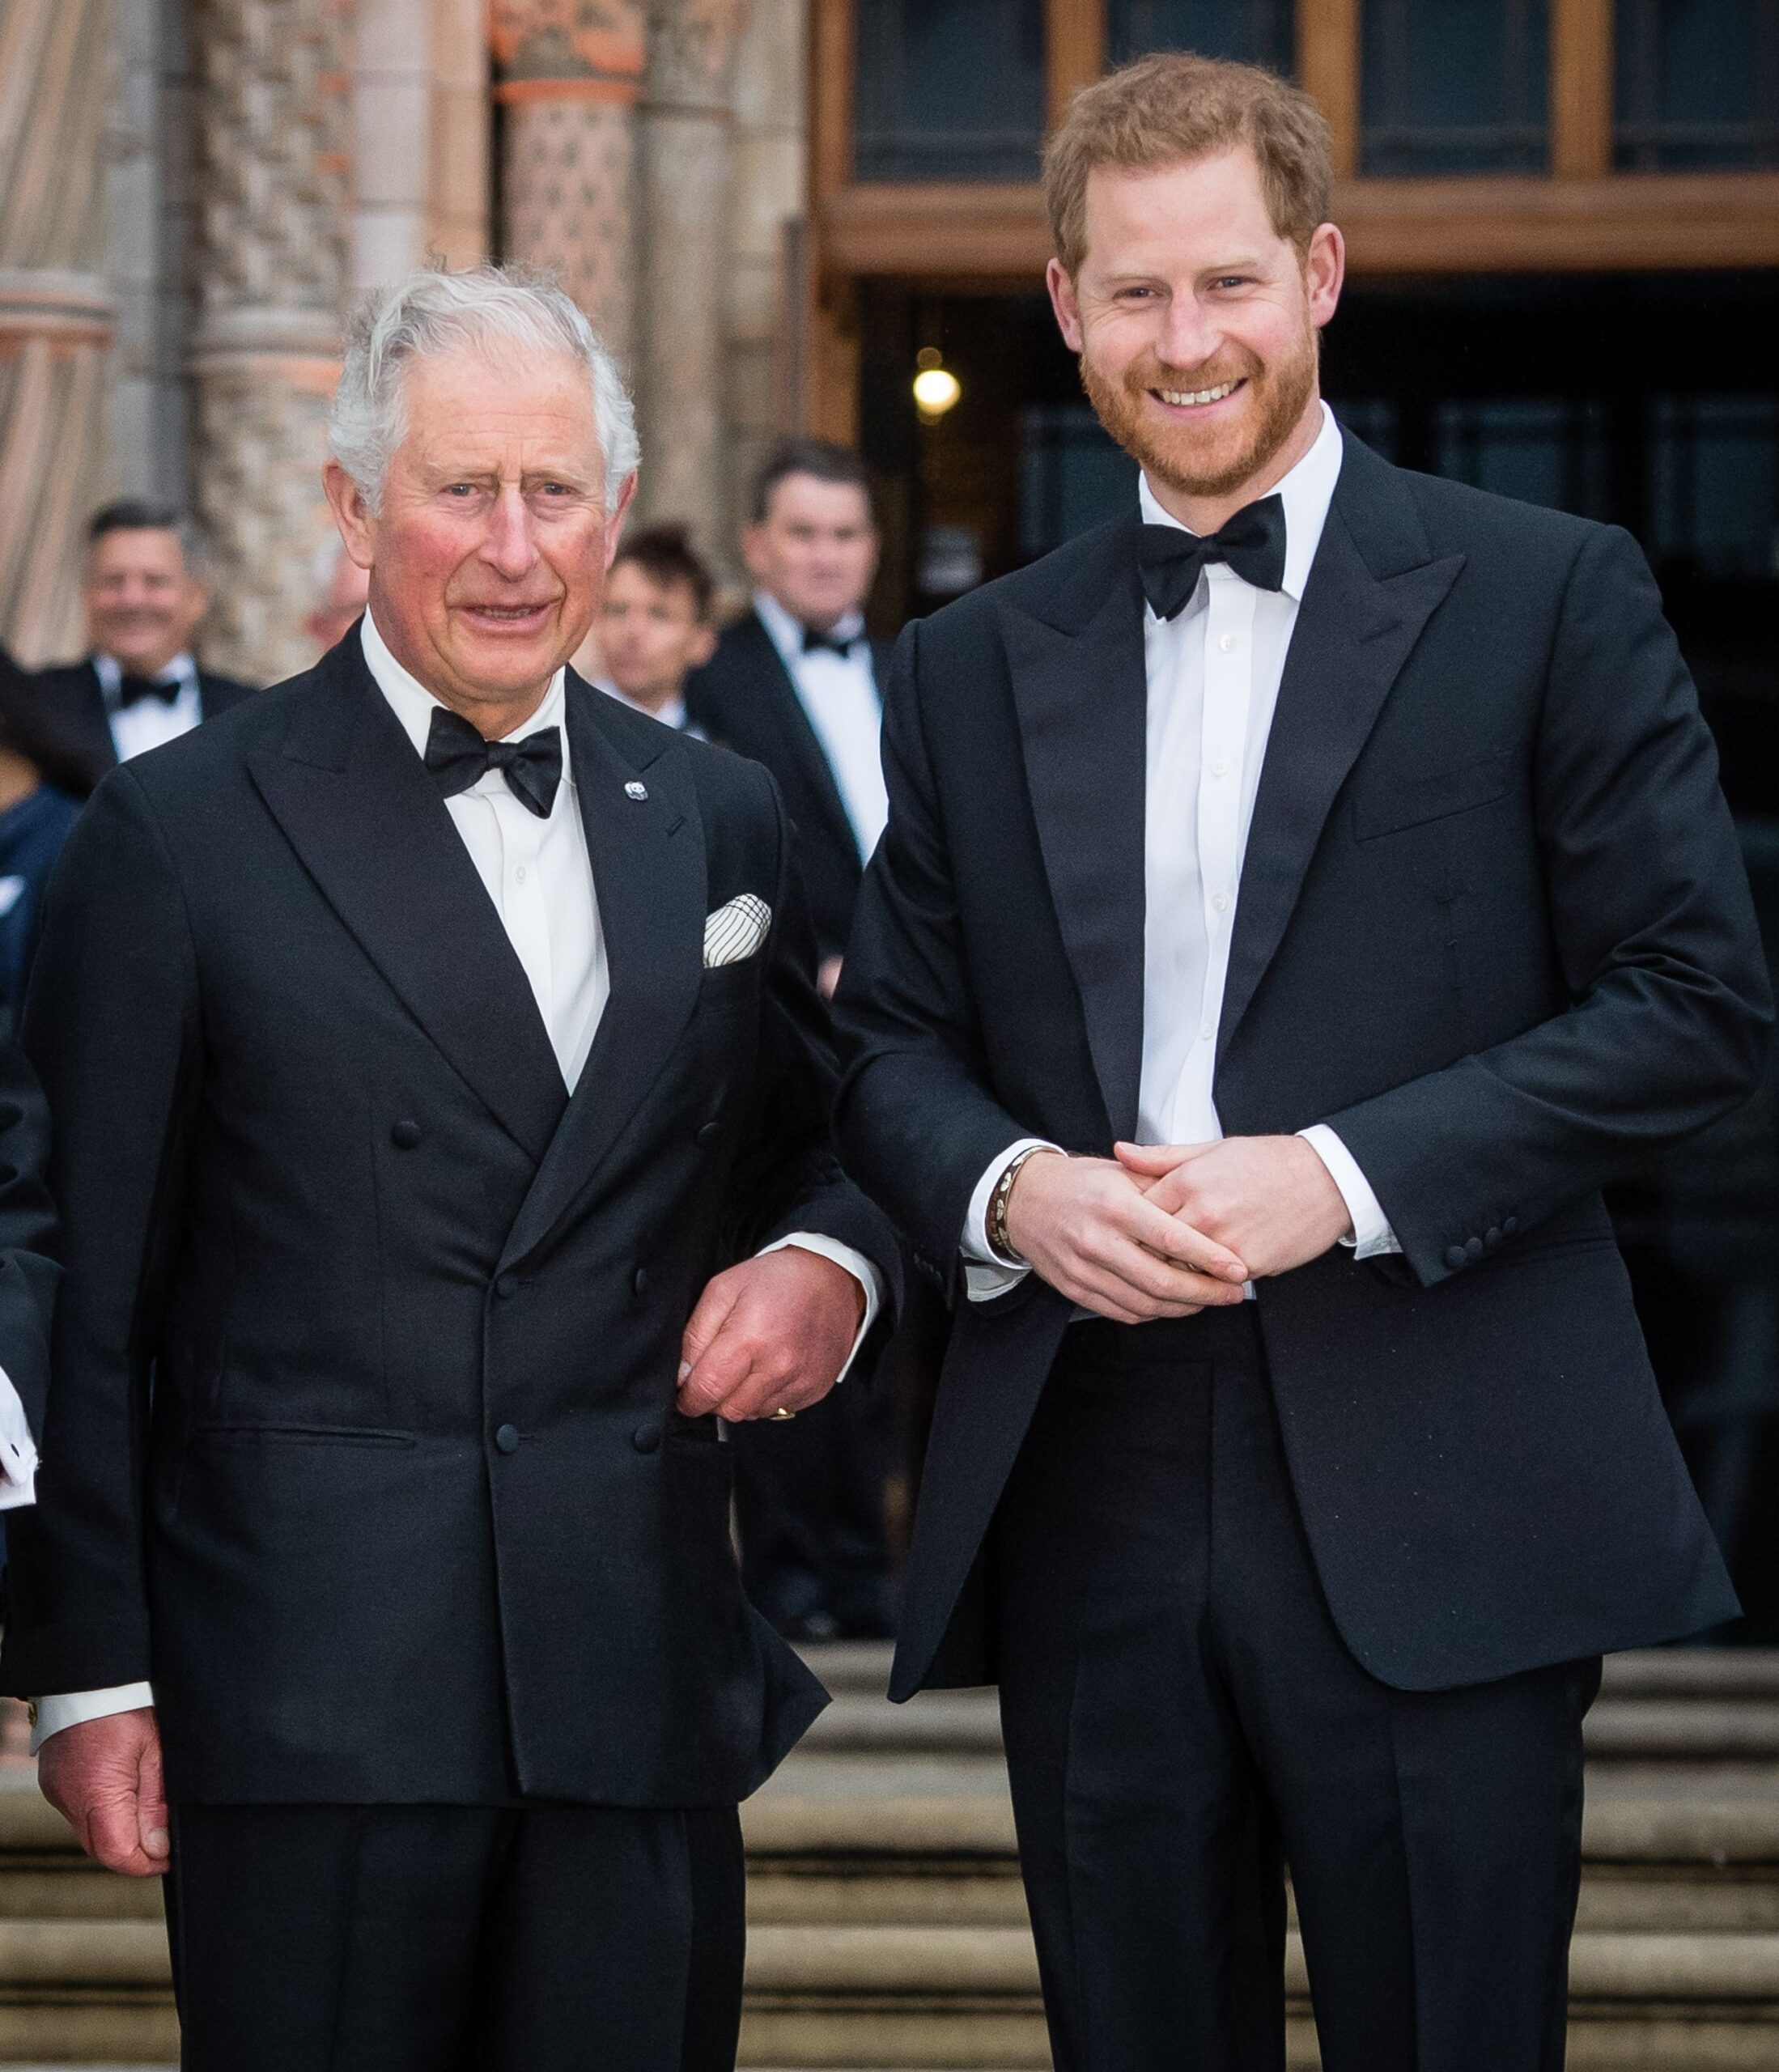 The annual report from Buckingham Palace: Prince Harry and Meghan Markle have deceived the public, this is the truth